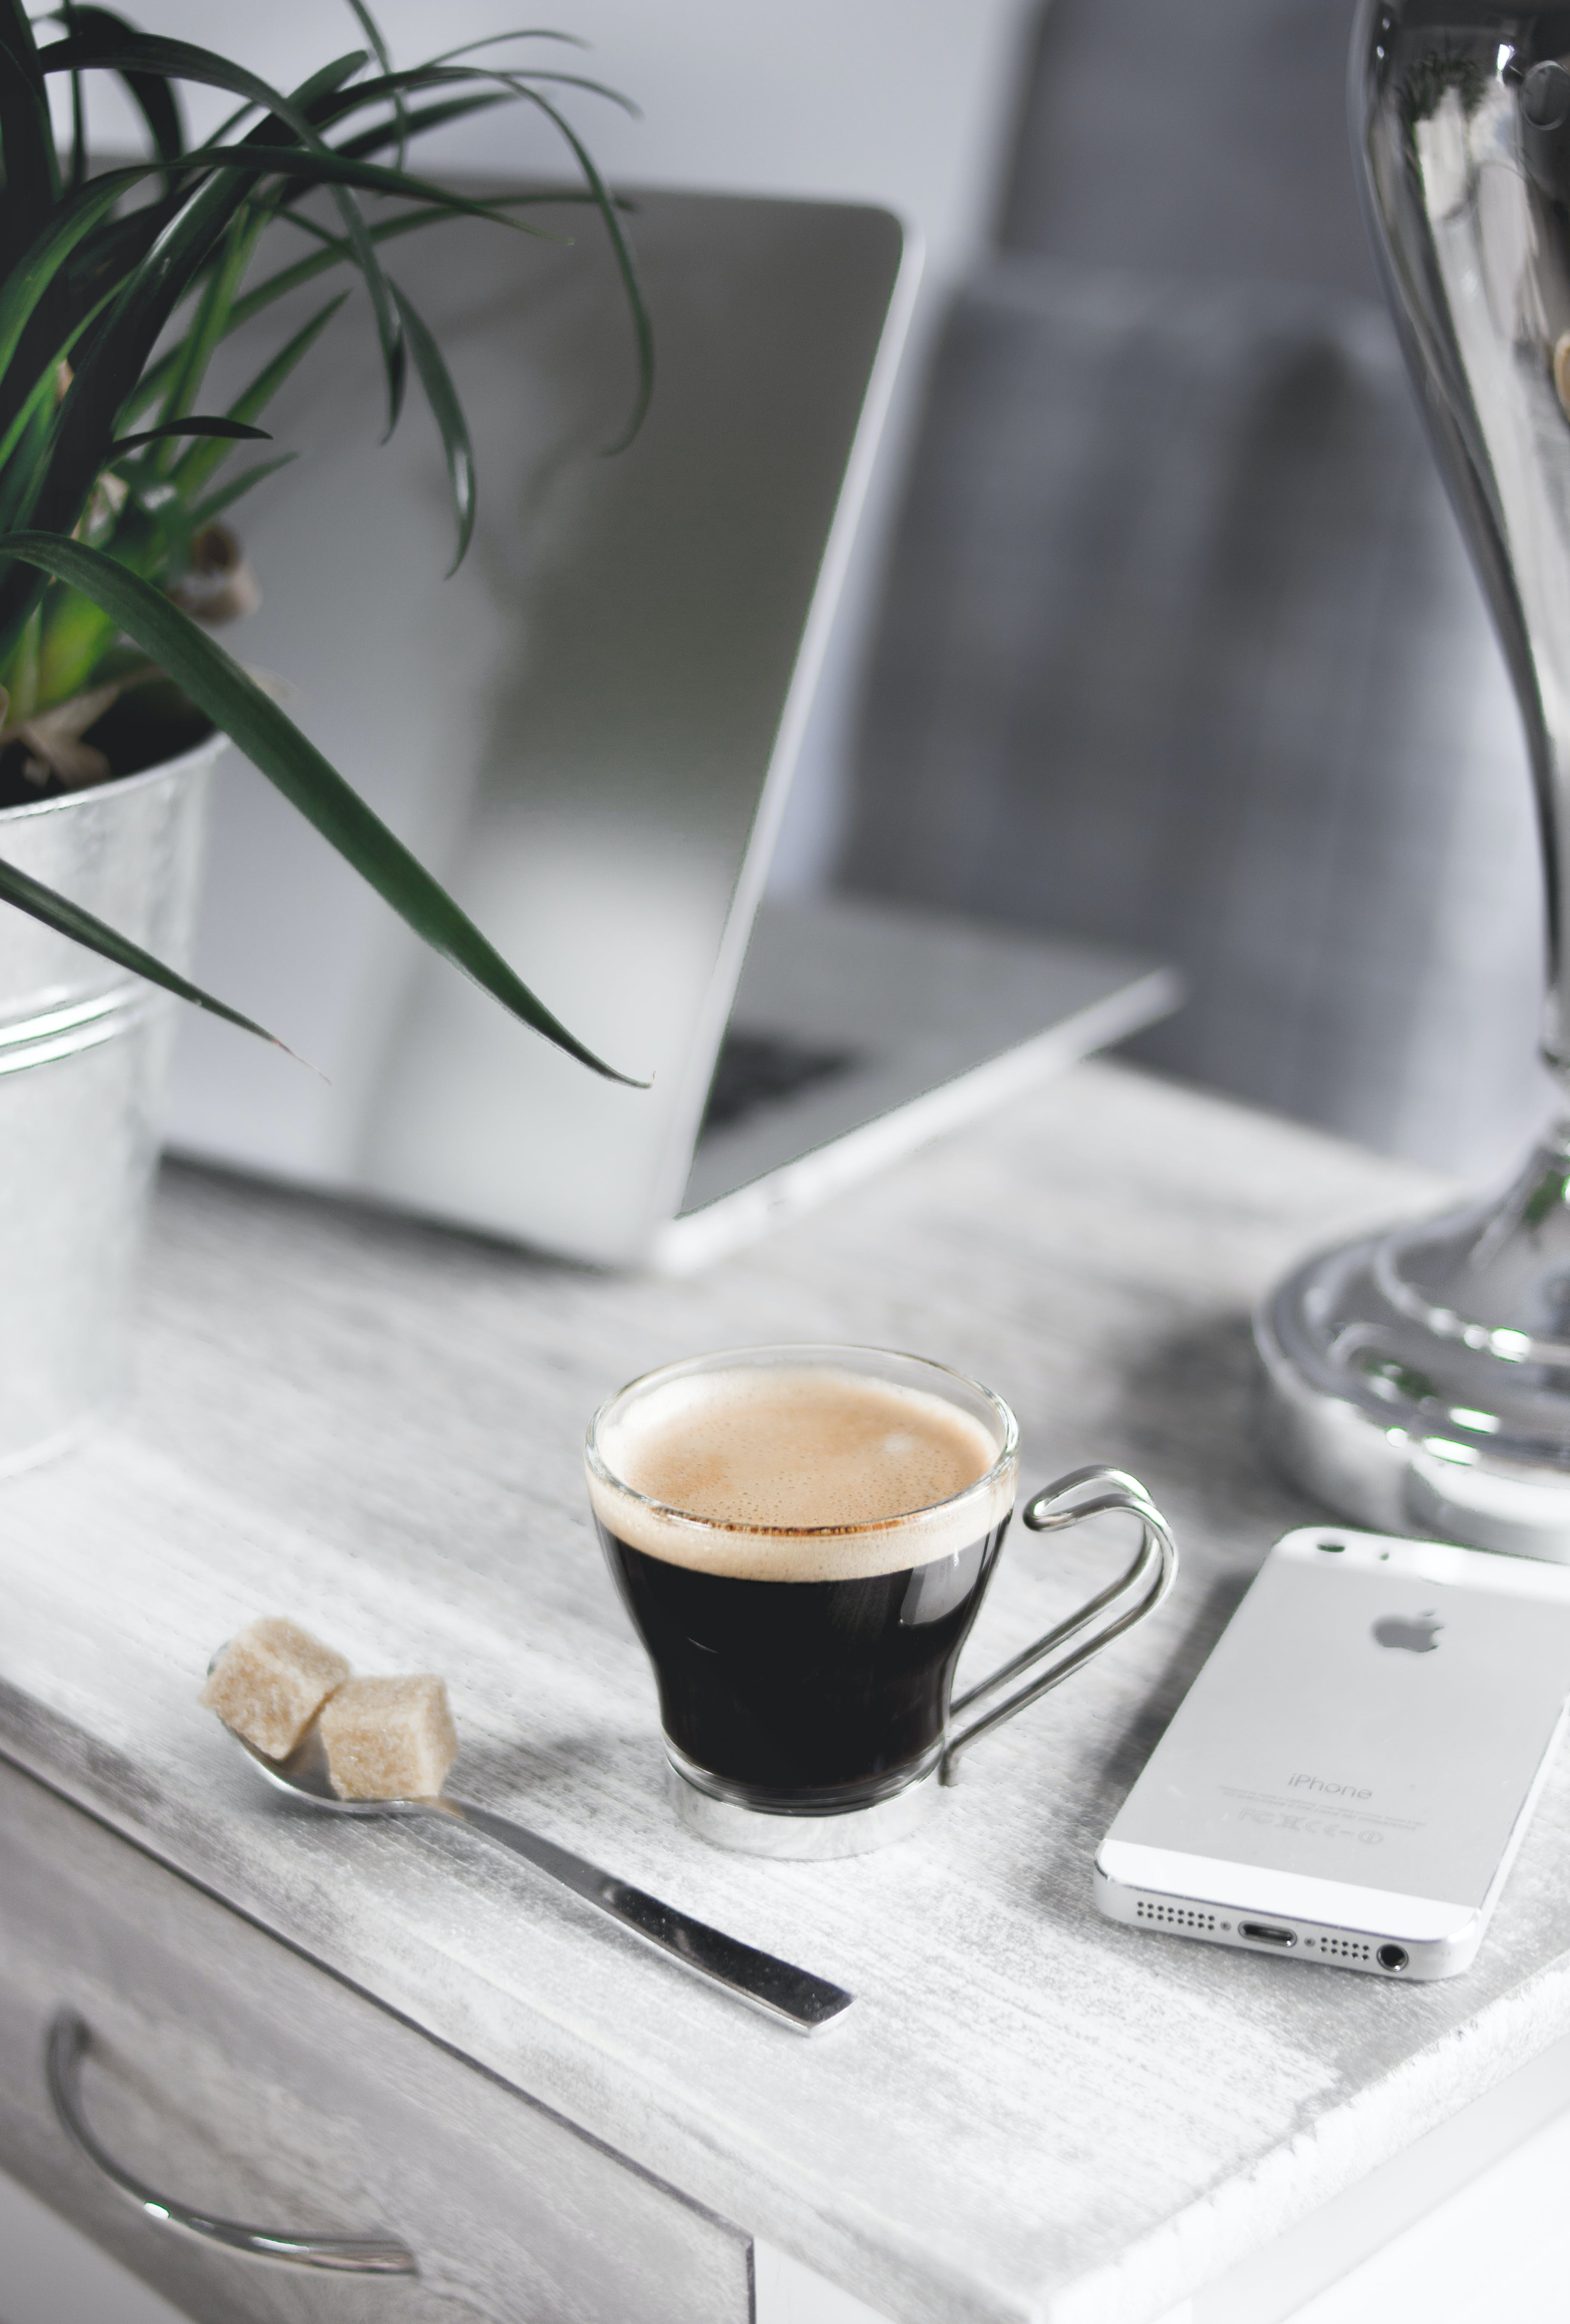 Free stock photo of coffee, cup, spoon, desk